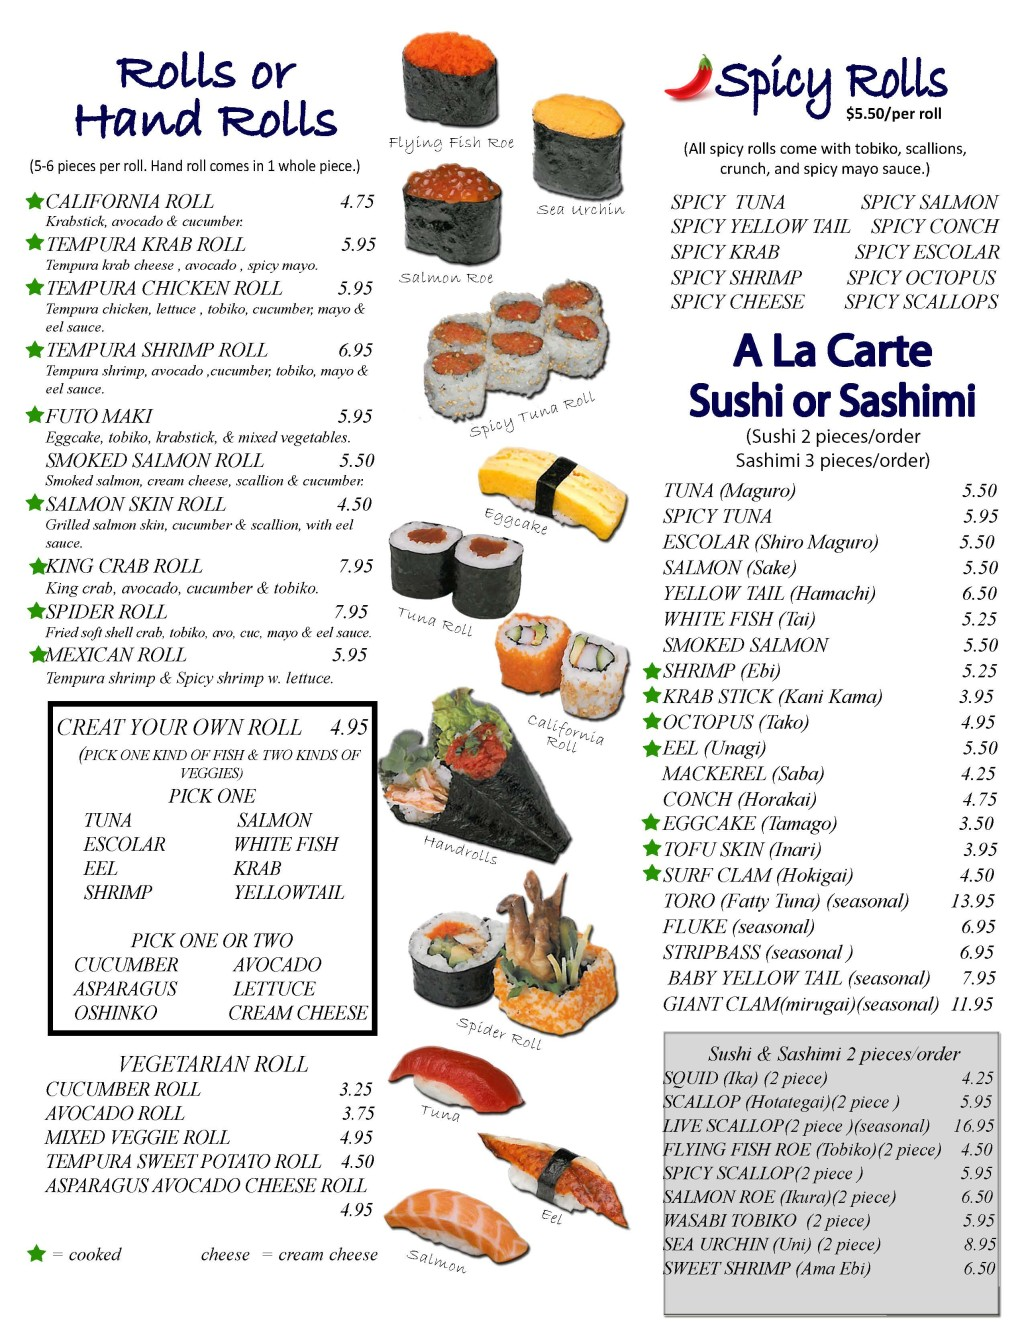 http://a-akisushi.com/wp-content/uploads/2016/03/newest-menu-page3-roll-n-handroll-small-1024x1325.jpg